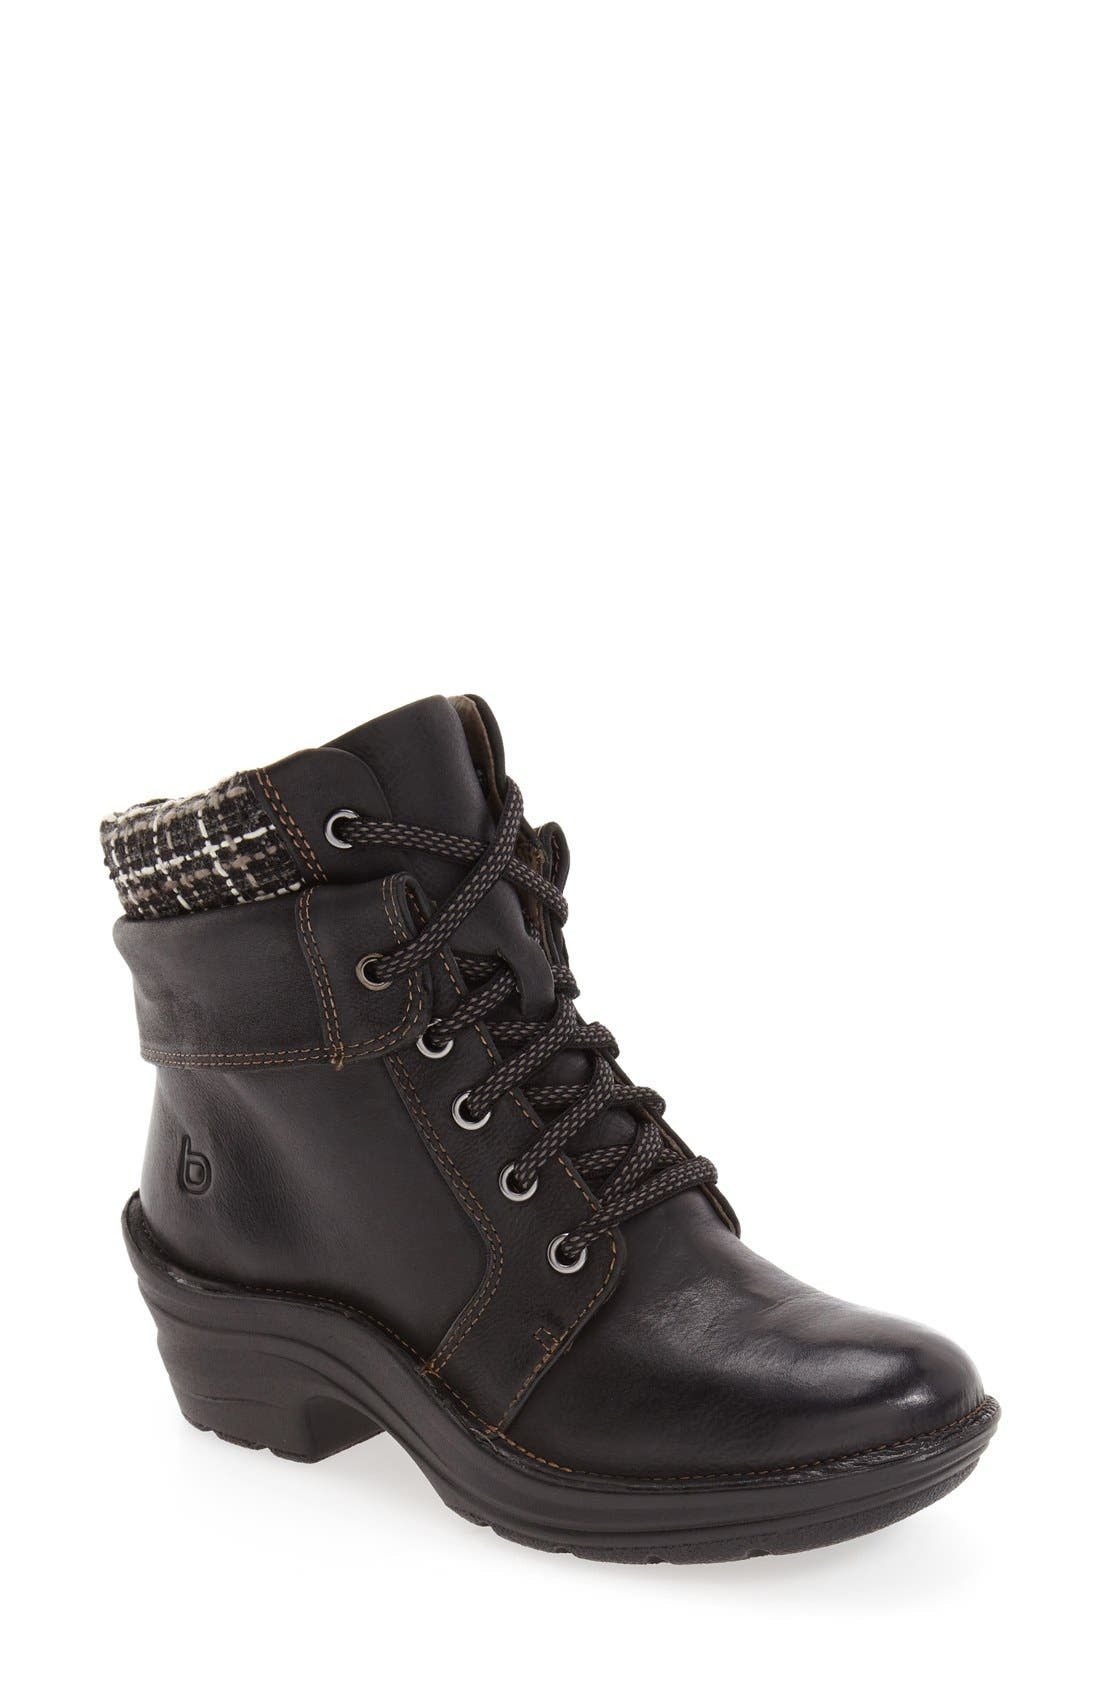 'Romulus' Boot,                         Main,                         color, Black Leather